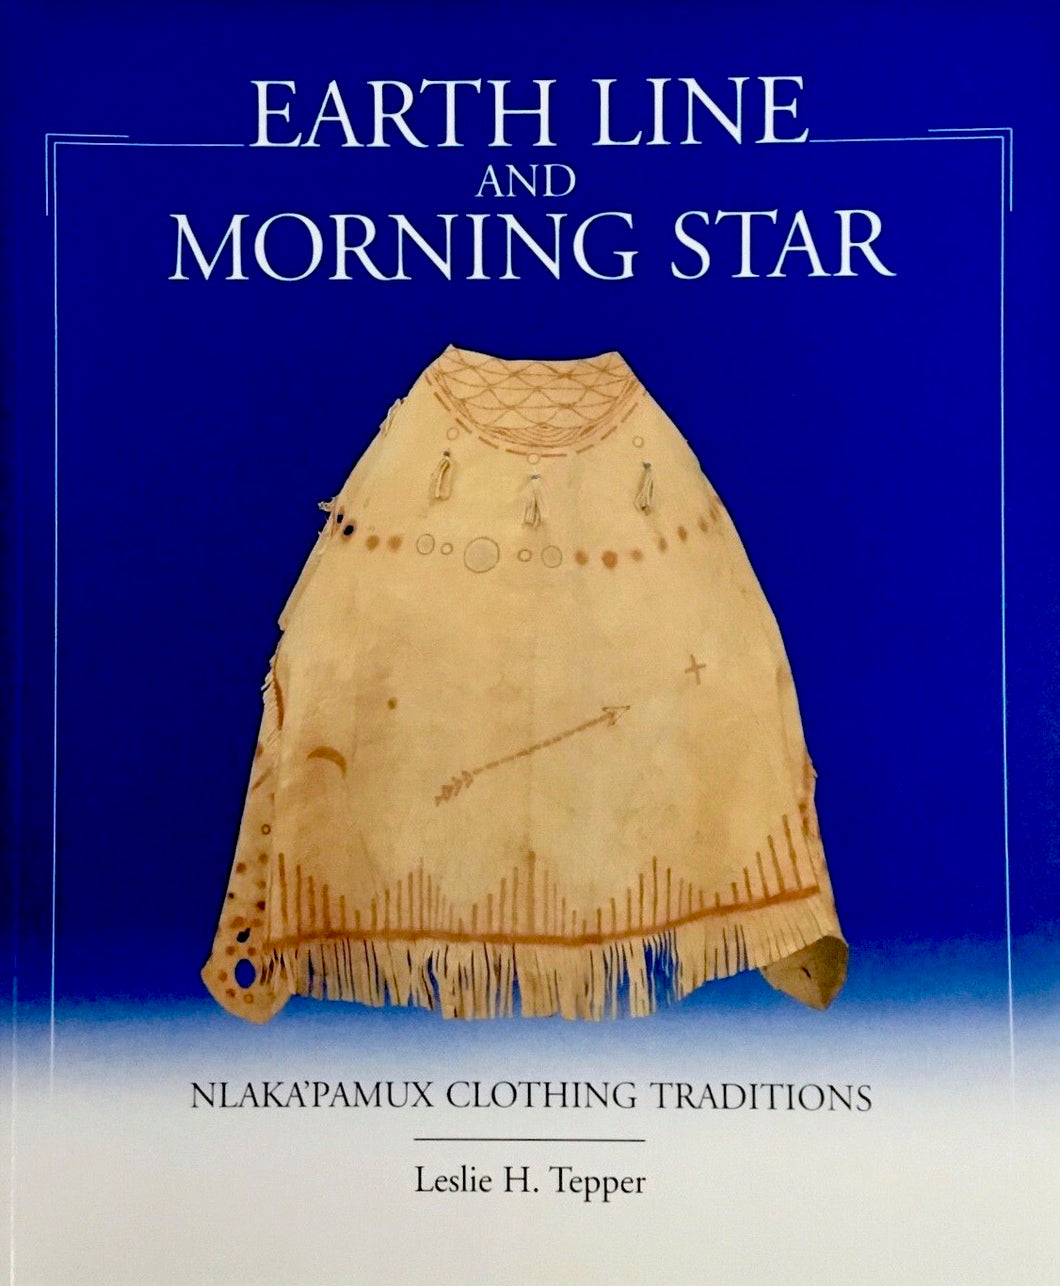 EARTH LINE AND MORNING STAR - NLAKA'PAMUX CLOTHING TRADITIONS